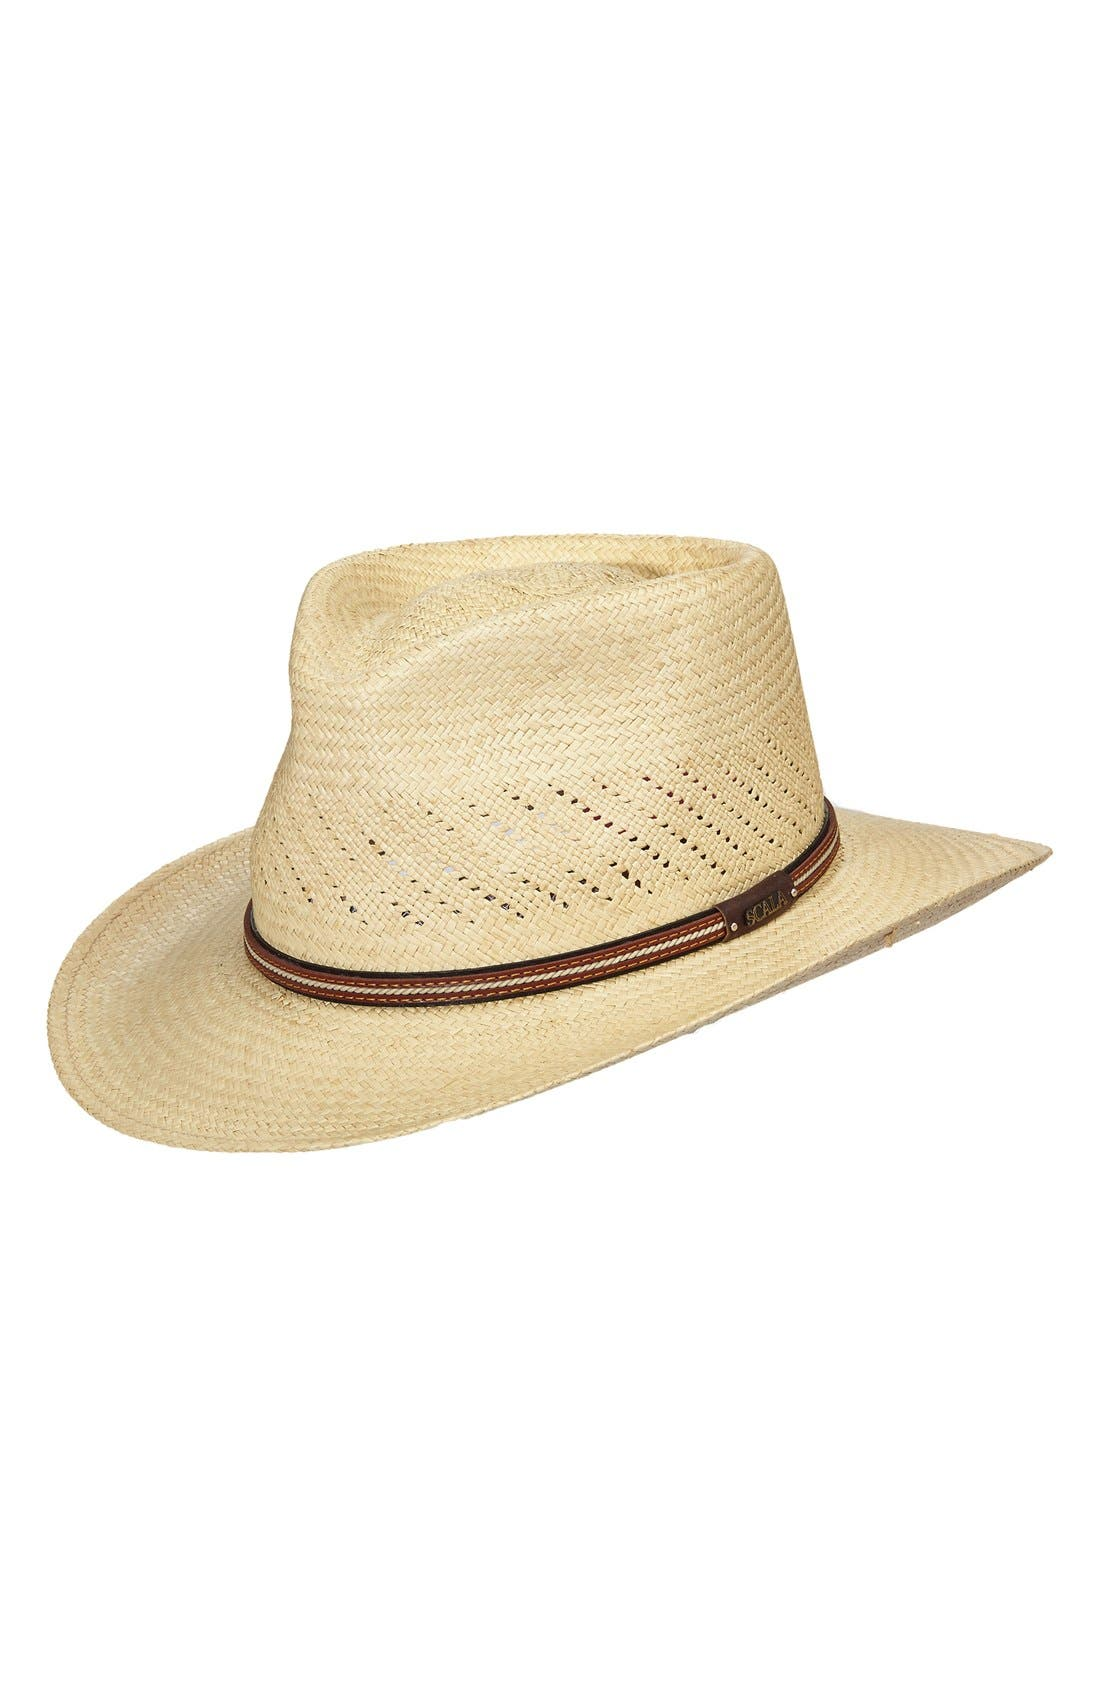 Straw Panama Hat,                             Main thumbnail 1, color,                             Natural